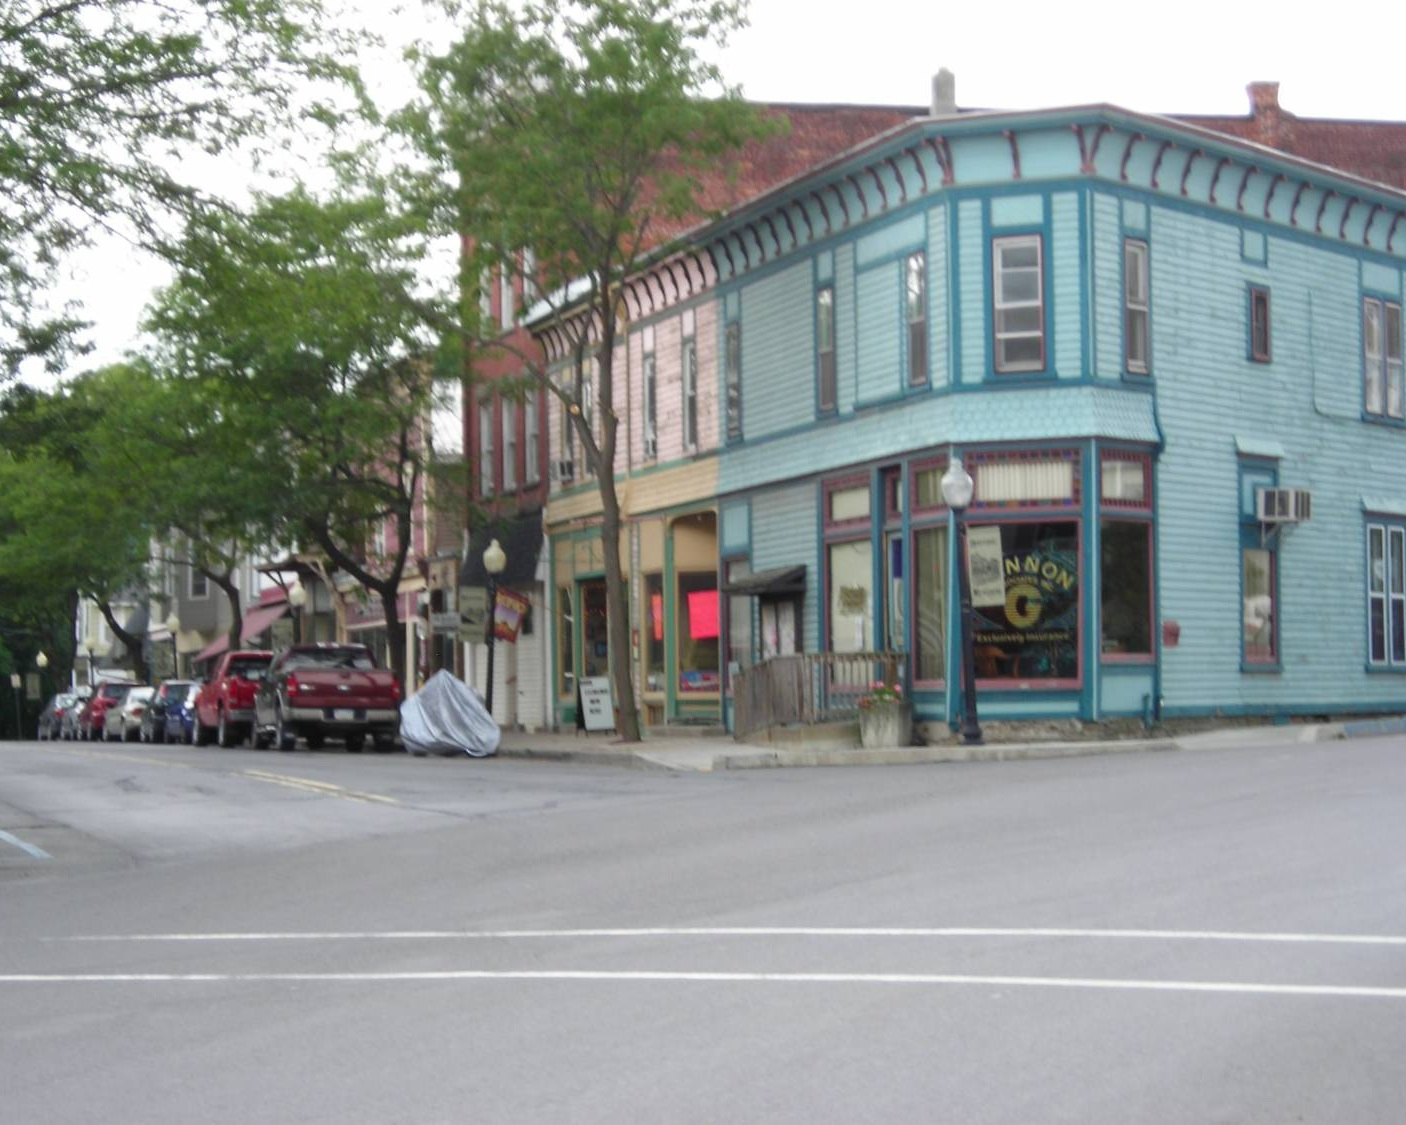 Downtown Wylausing, Pennsylvania showing Victorian buildings. Corner of Church and Main looking south - Photo Credit: Thaddeus P. Bejnar [CC0], from Wikimedia Commons